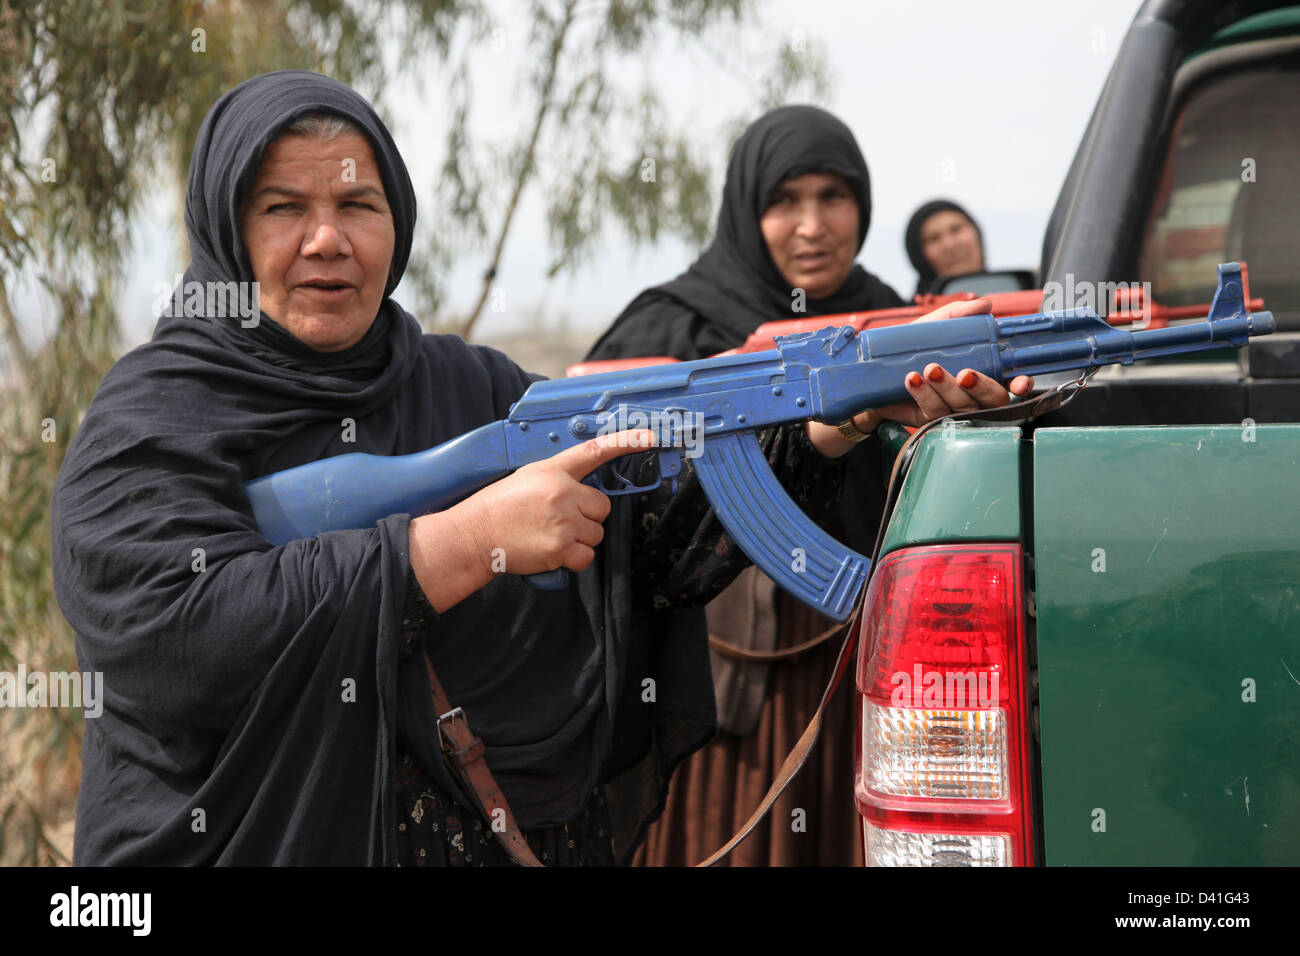 Women Afghan Uniform Police wield training weapons and take cover behind a police vehicle while conducting a high - Stock Image